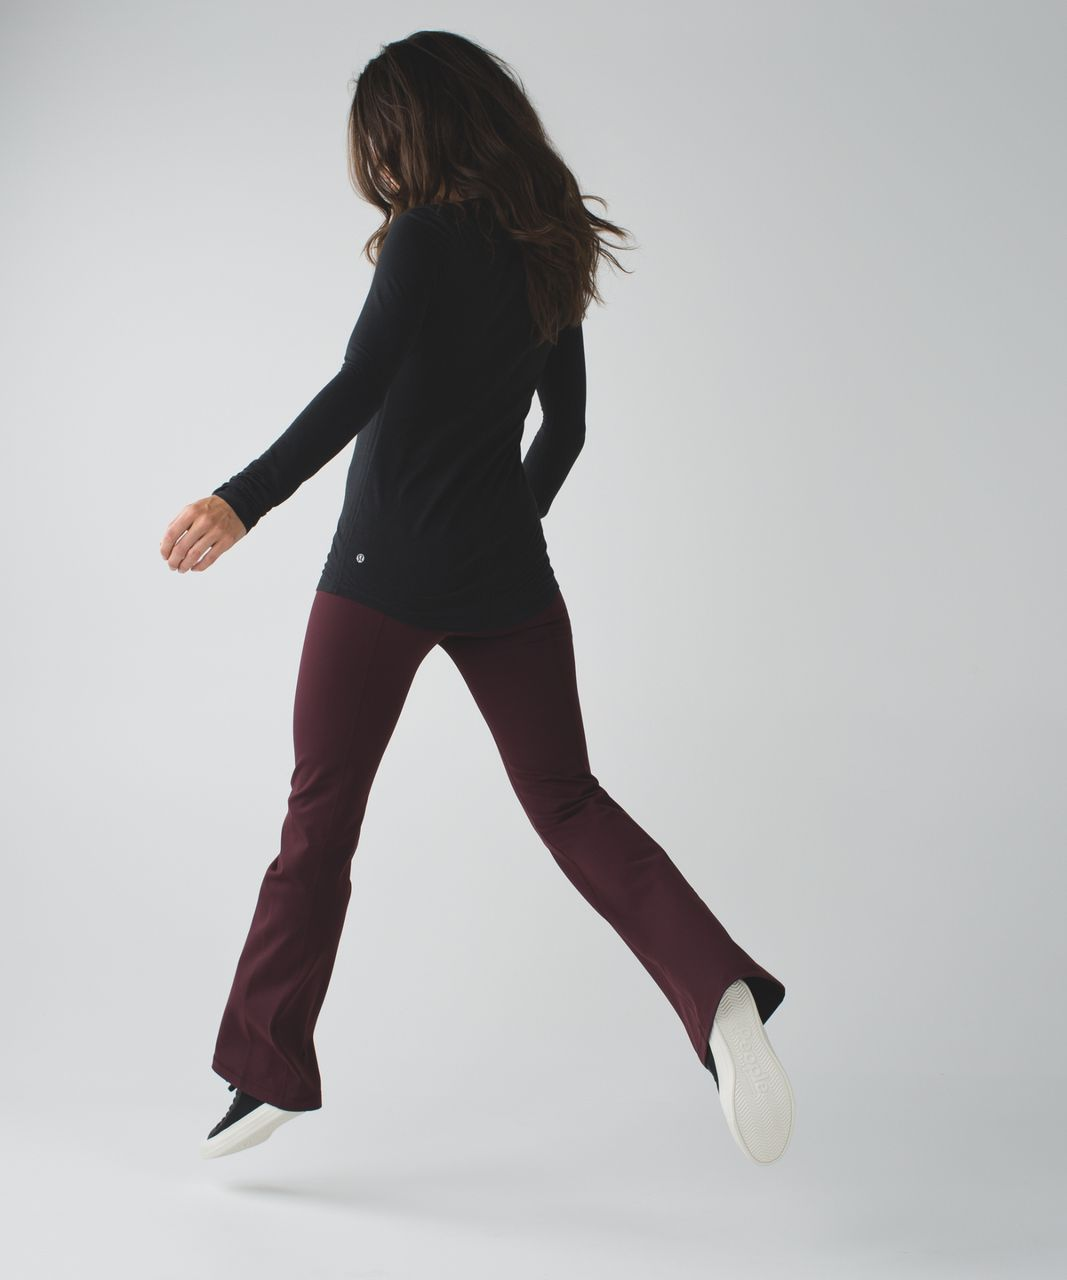 Lululemon Groove Pant III (Regular) - Bordeaux Drama / Heathered Bordeaux Drama